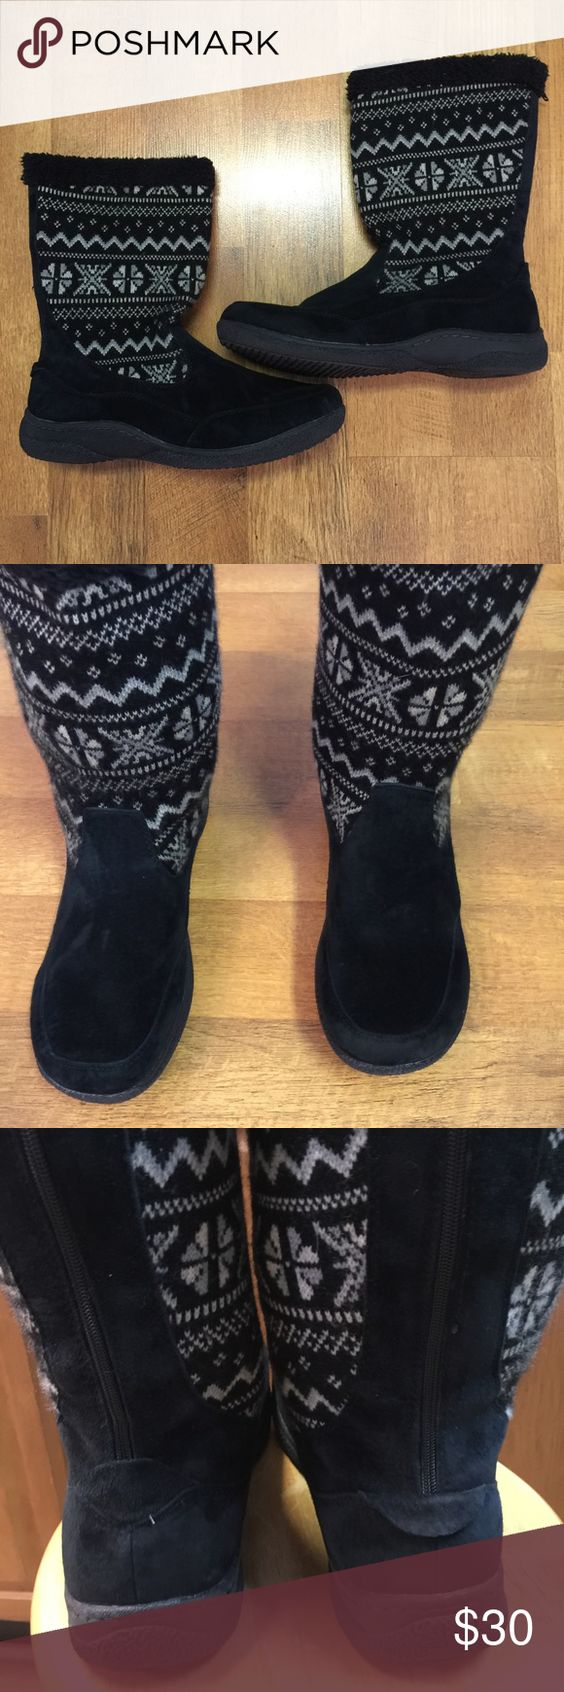 ProPet black snow/winter boots size 11. ProPet black snow/winter boots size 11. This is a great pair of suede winter boots. They have back zipper for easy on/off. They are in great shape. Propet Shoes Winter & Rain Boots